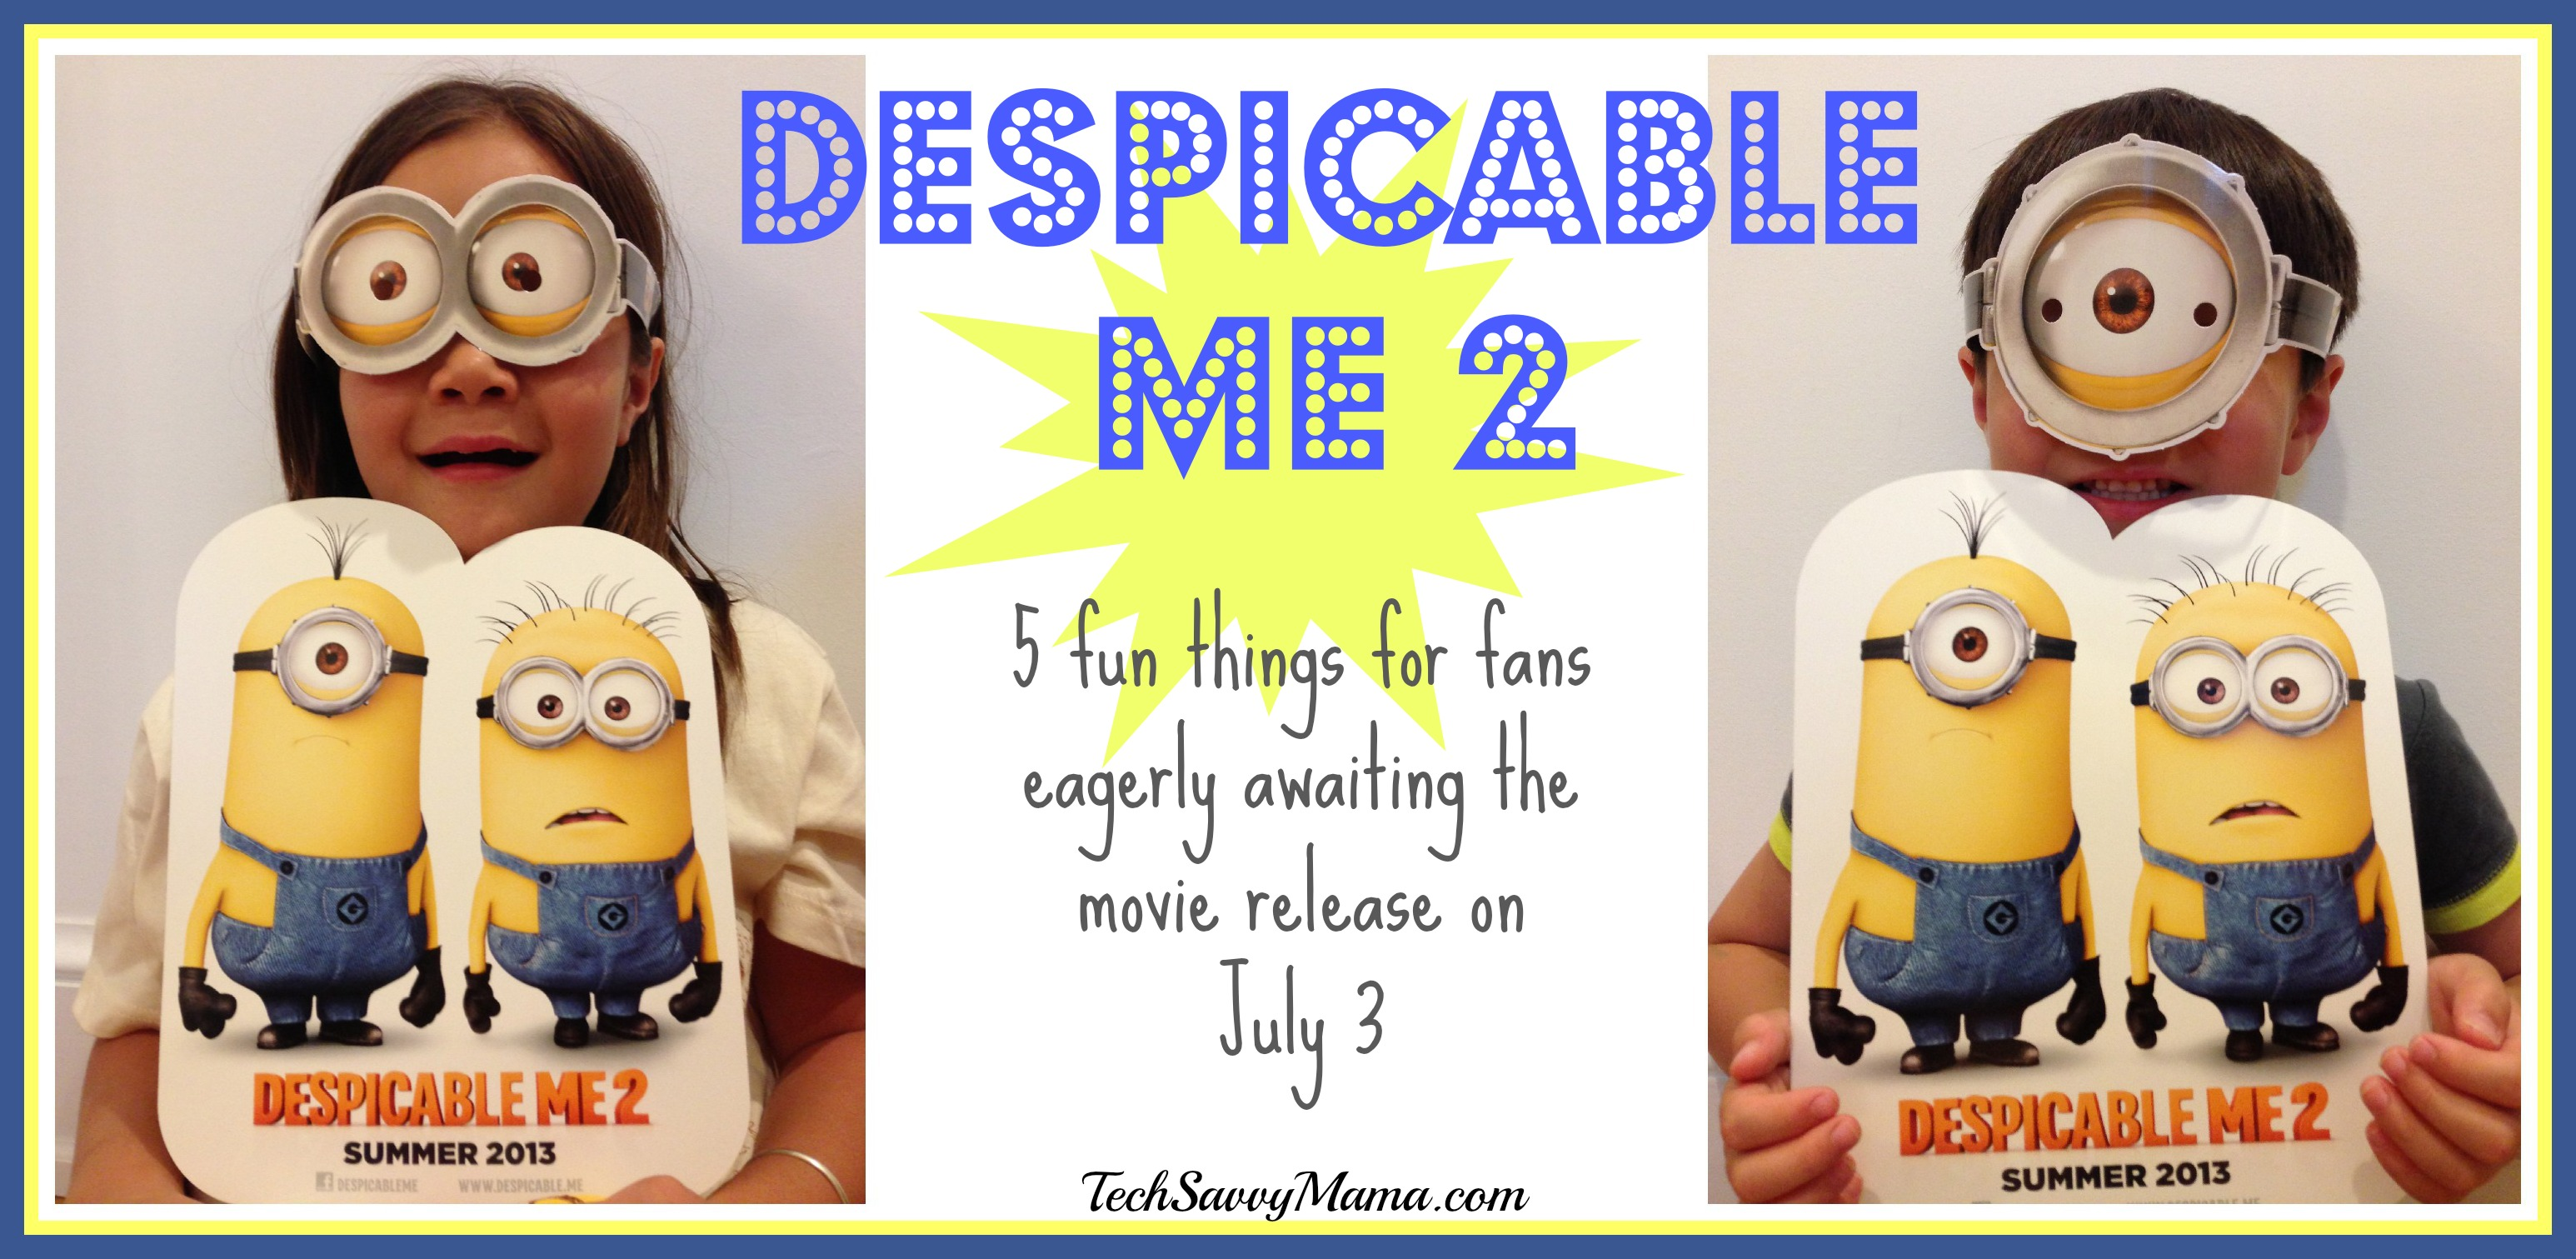 5 Fun Activities for Despicable Me Fans Awaiting Despicable Me 2